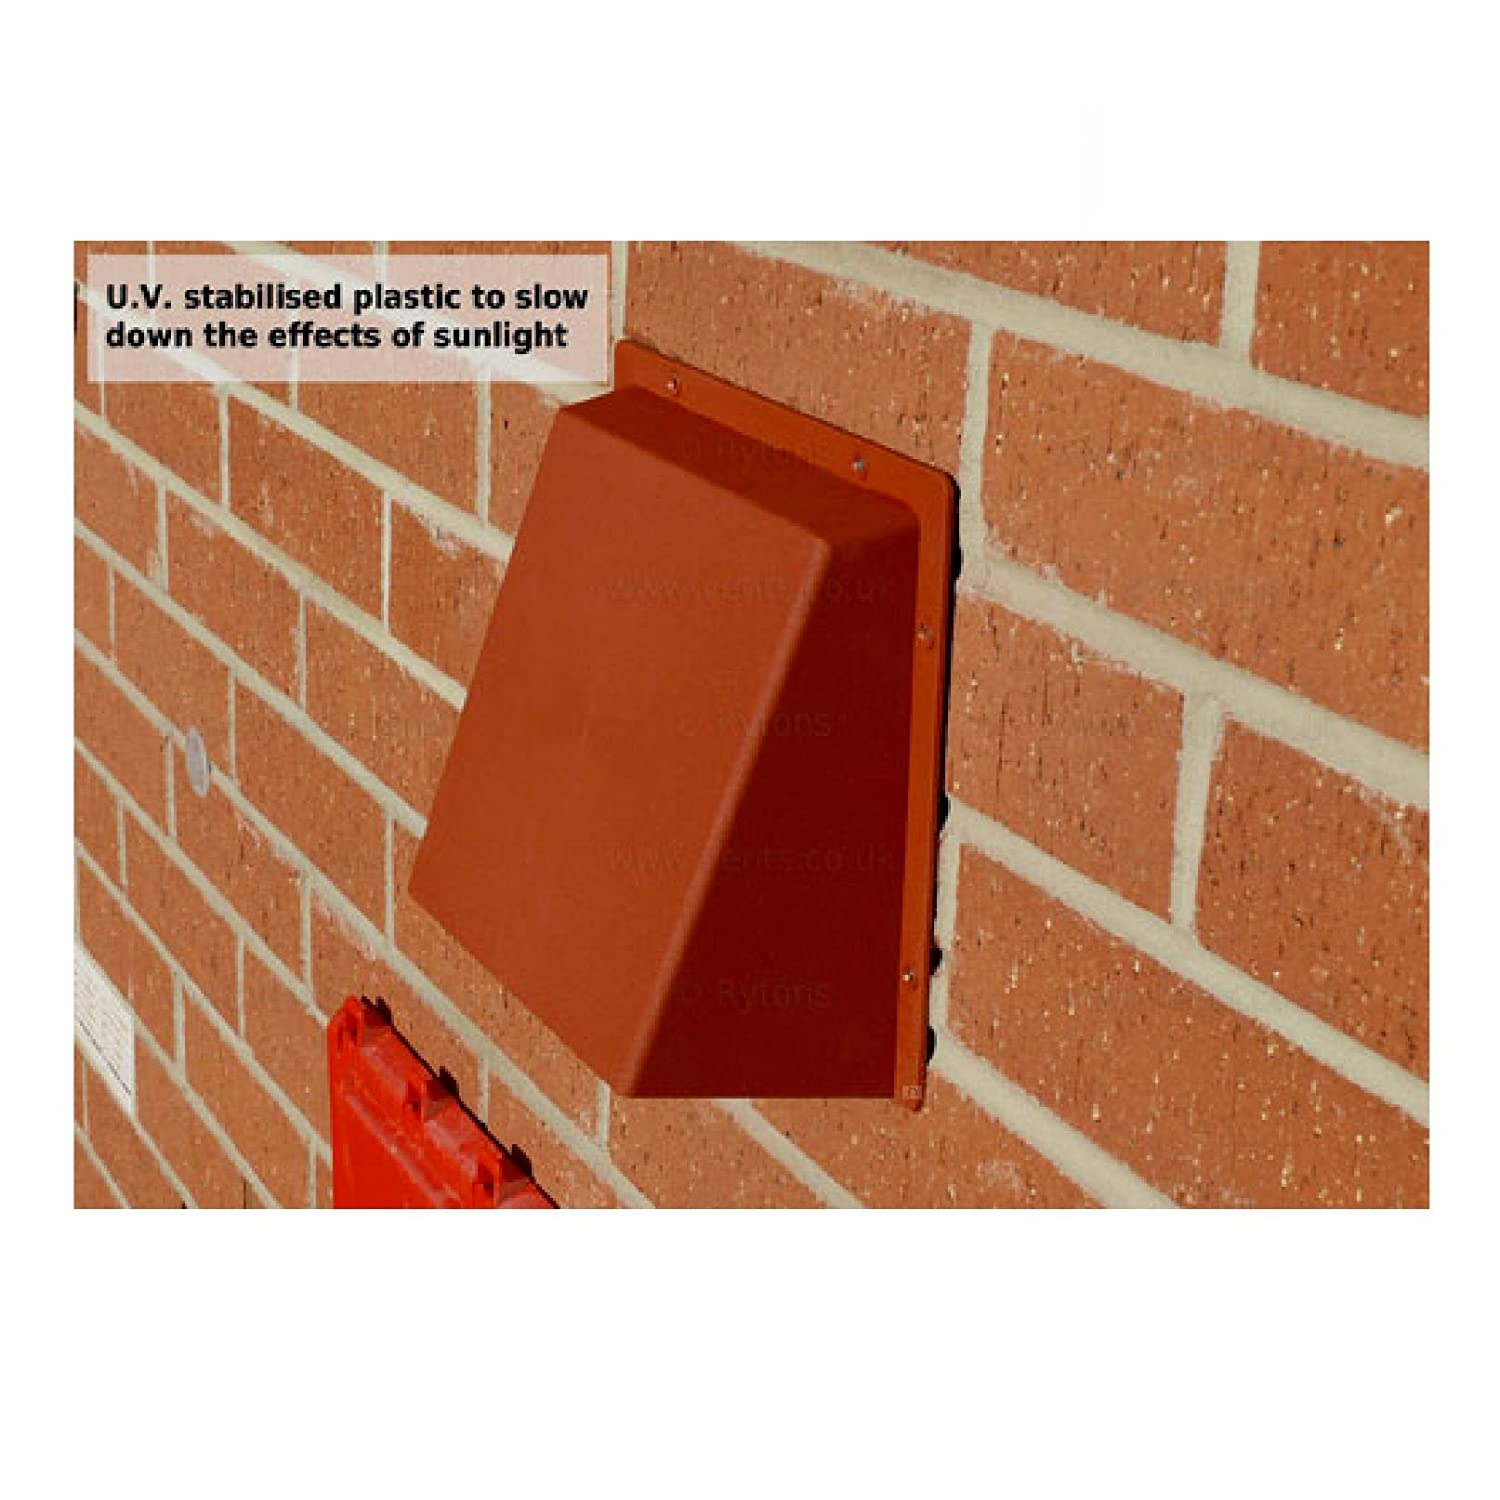 9 x 6 terracotta hooded cowl vent cover for air bricks grilles